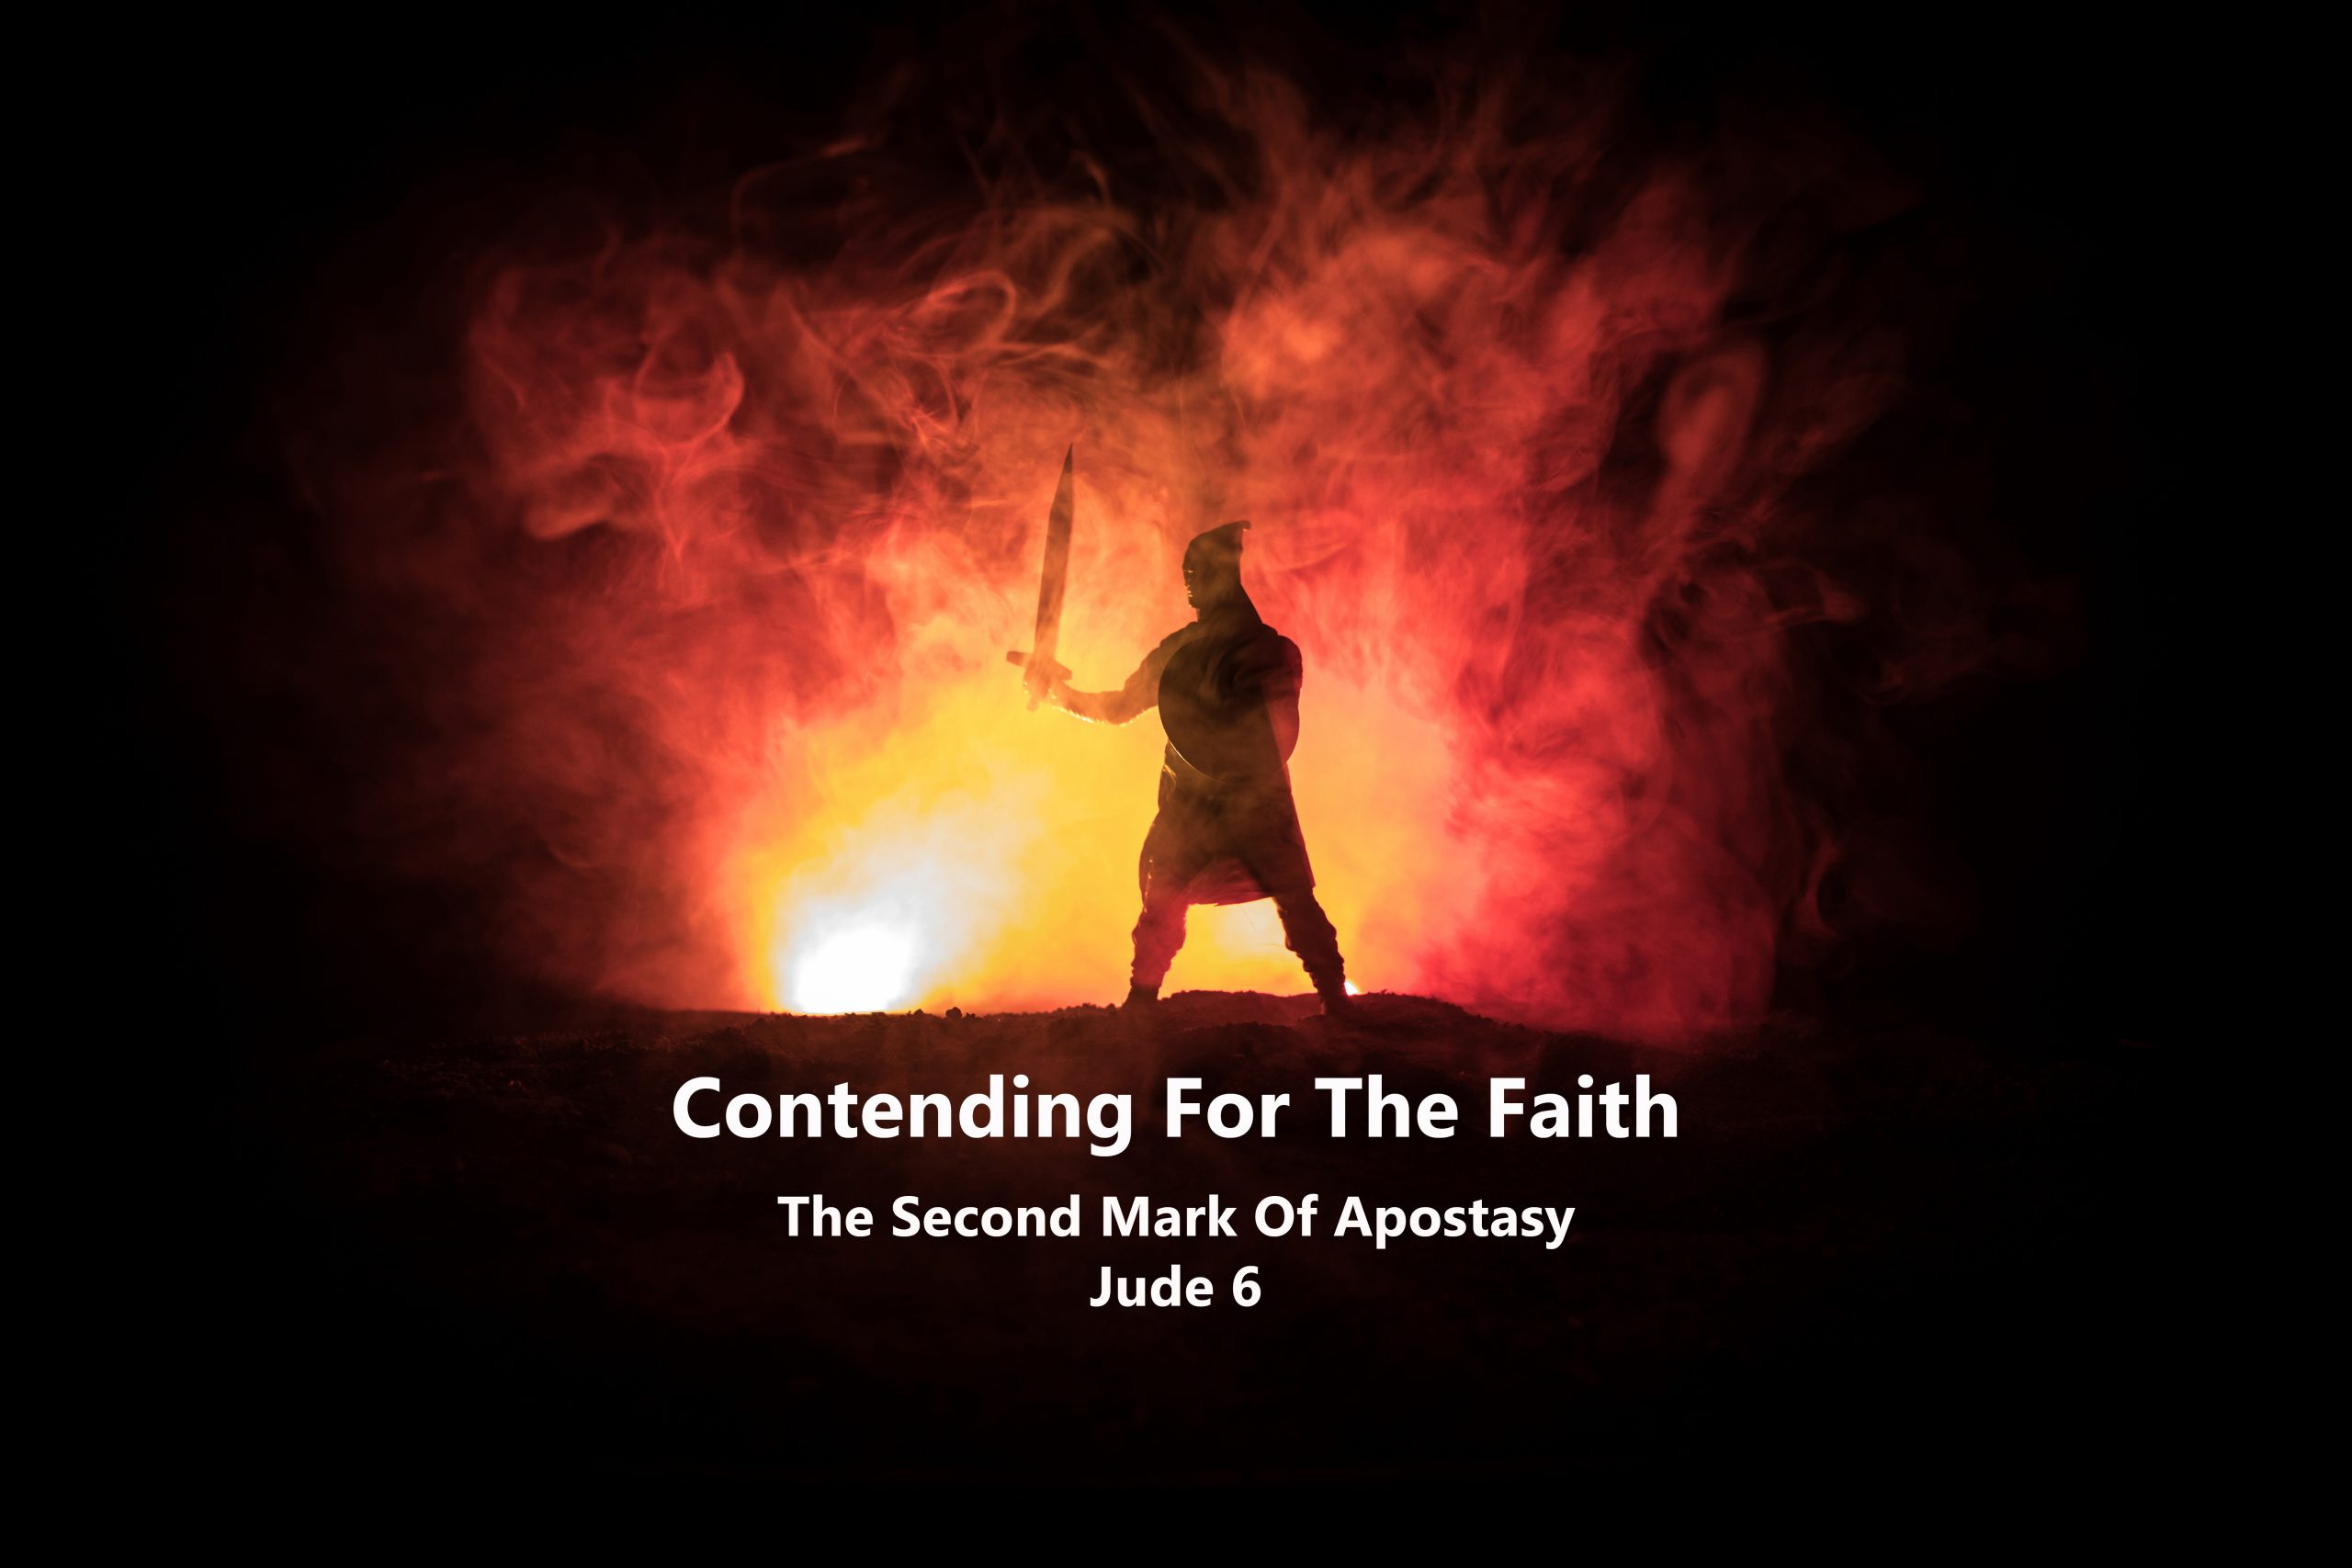 Jude v 6 The Second Mark Of Apostasy